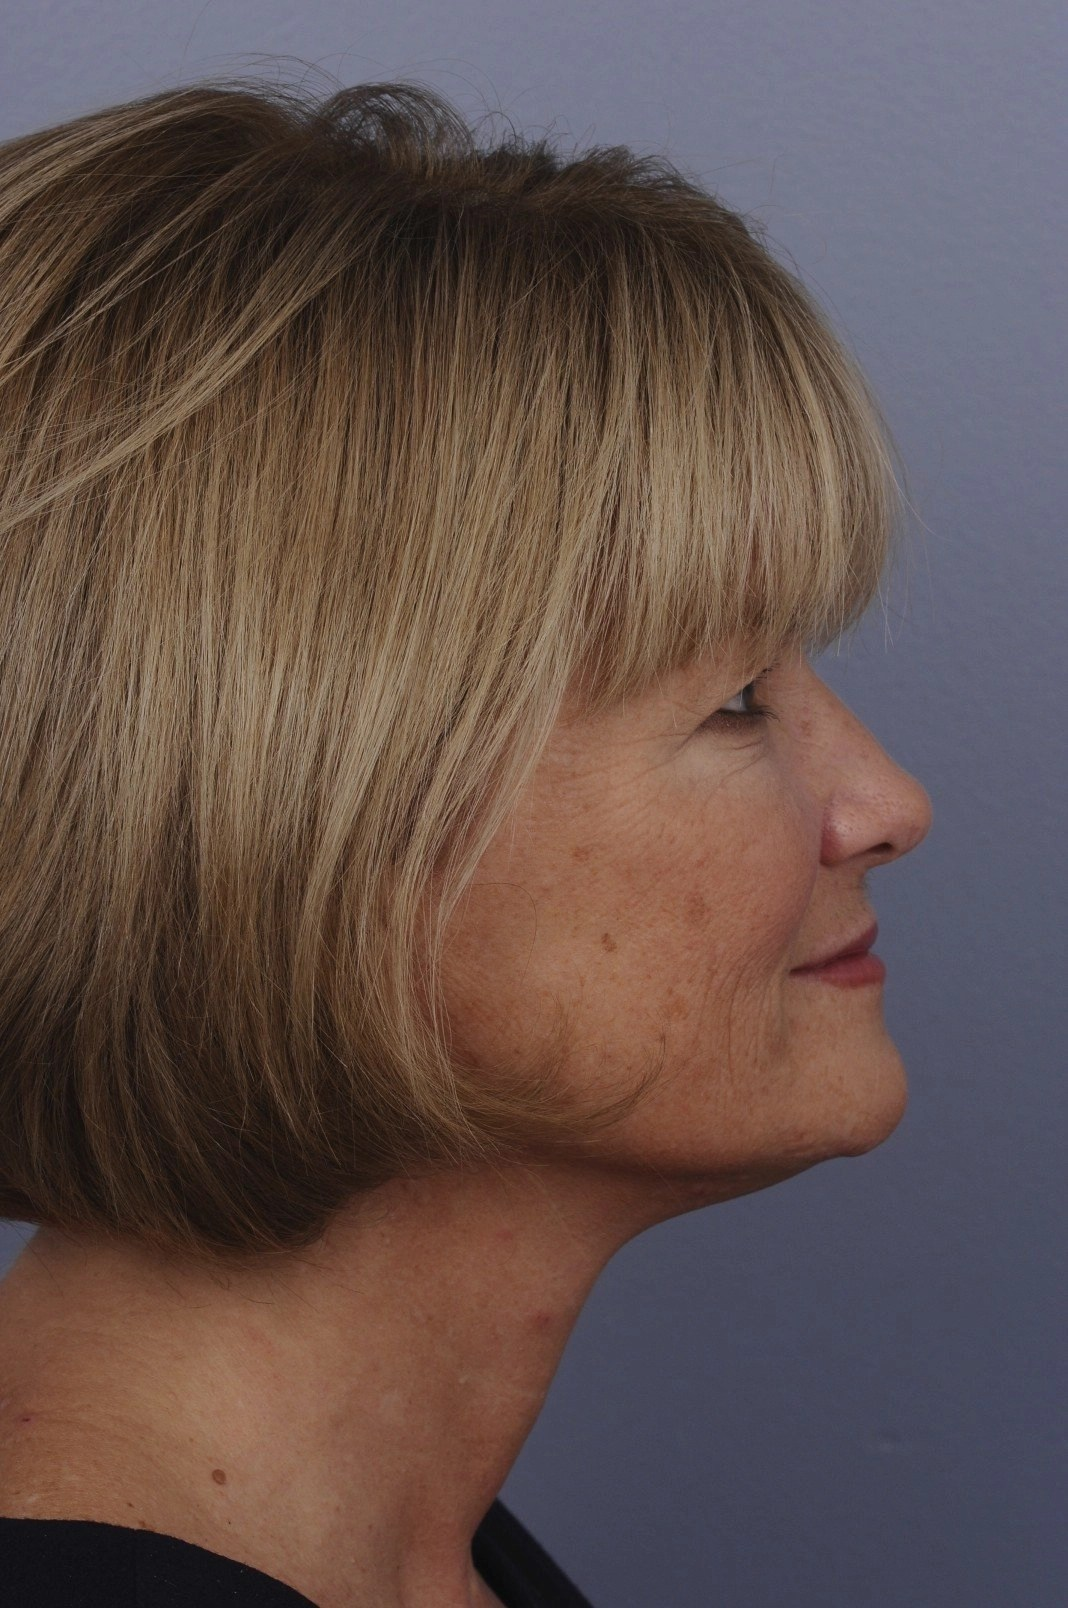 a review of a Stealth Jawline Ultherapy Treatment